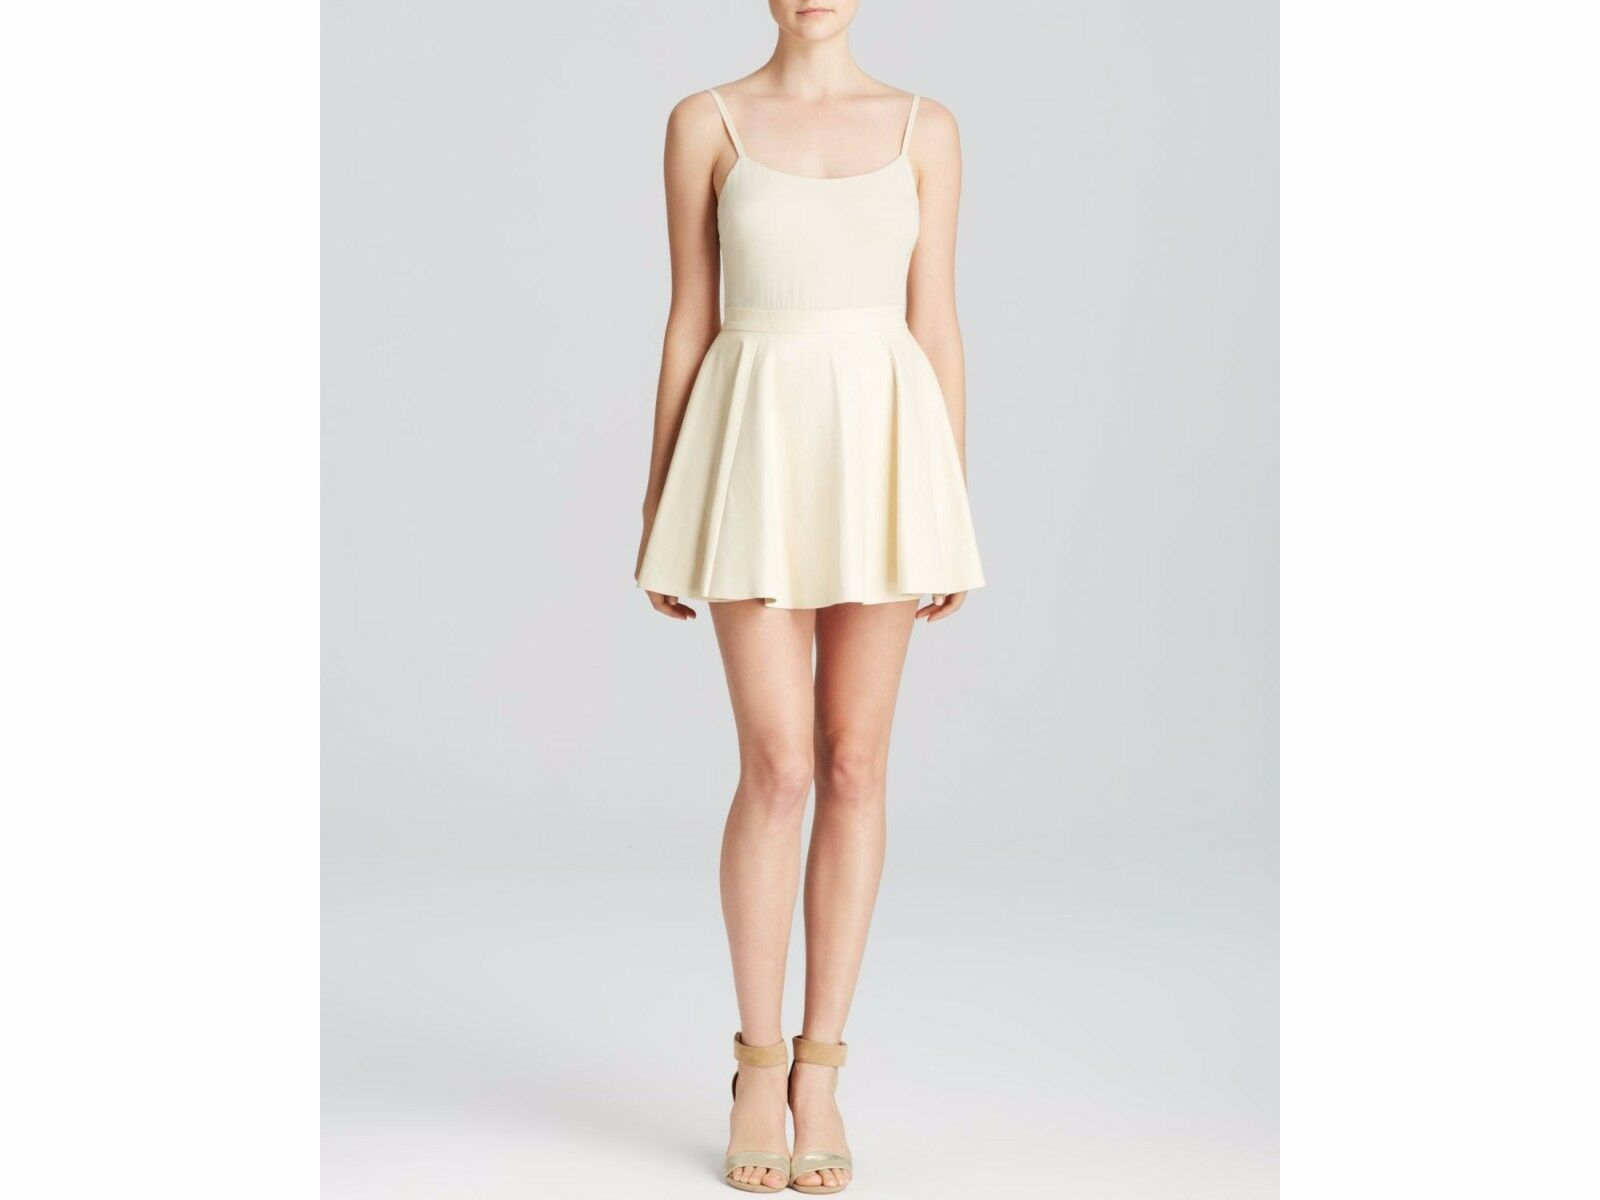 NWT Alice + Olivia Women's Natural Julie Leather Flare Dress SZ 4